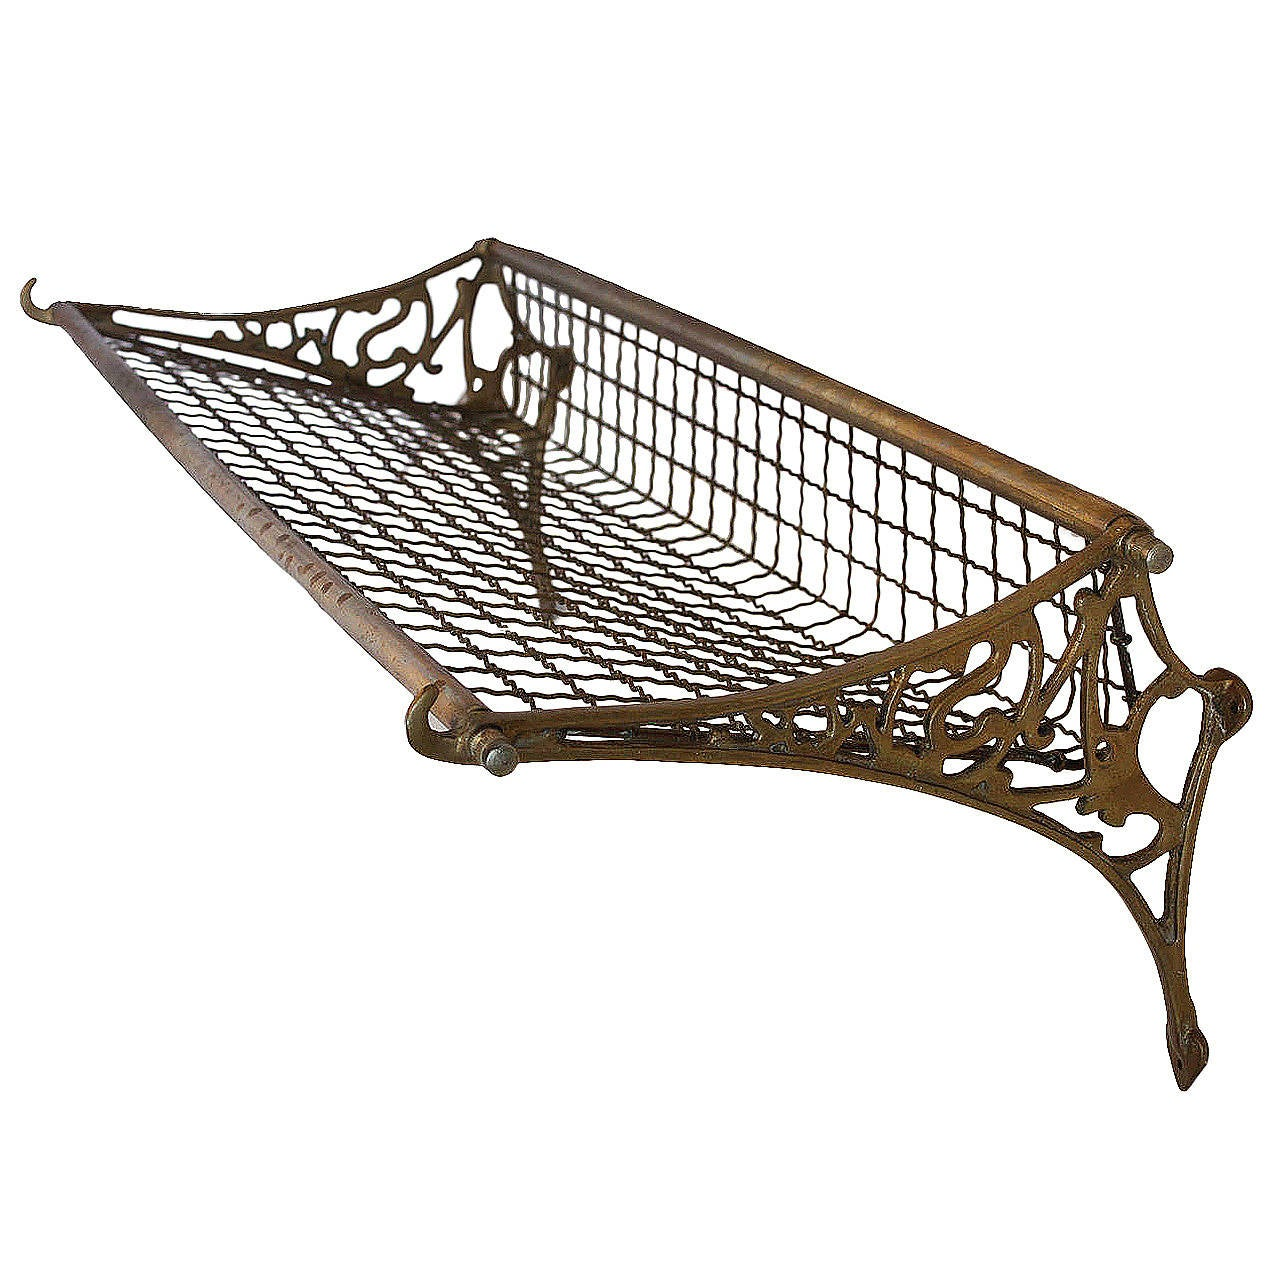 Antique Solid Brass Pullman Train Luggage Rack At 1stdibs